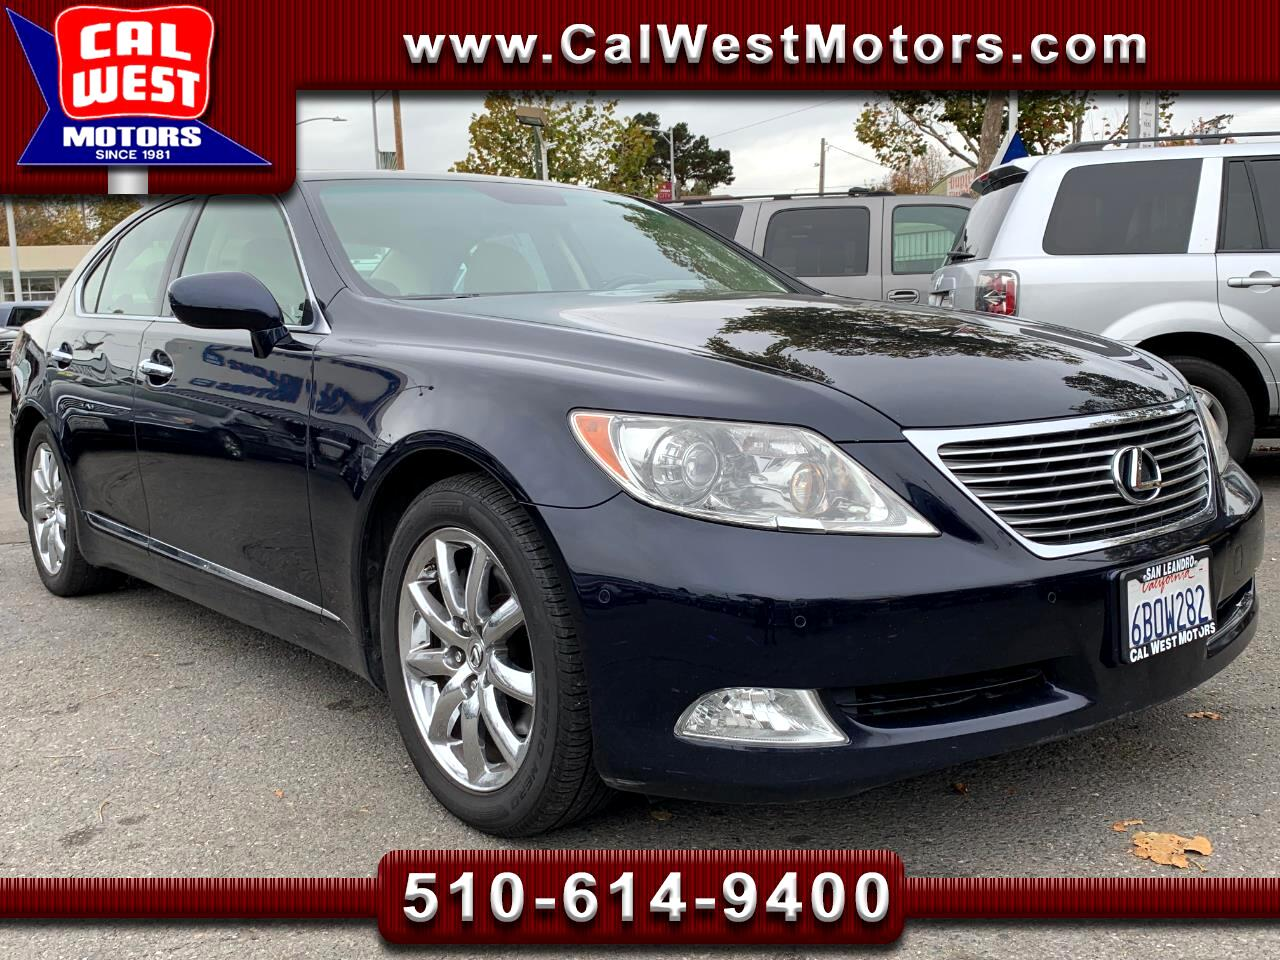 2008 Lexus LS 460 Luxury Sedan NAV BUCam 72K 1Owner GreatMtnceHist